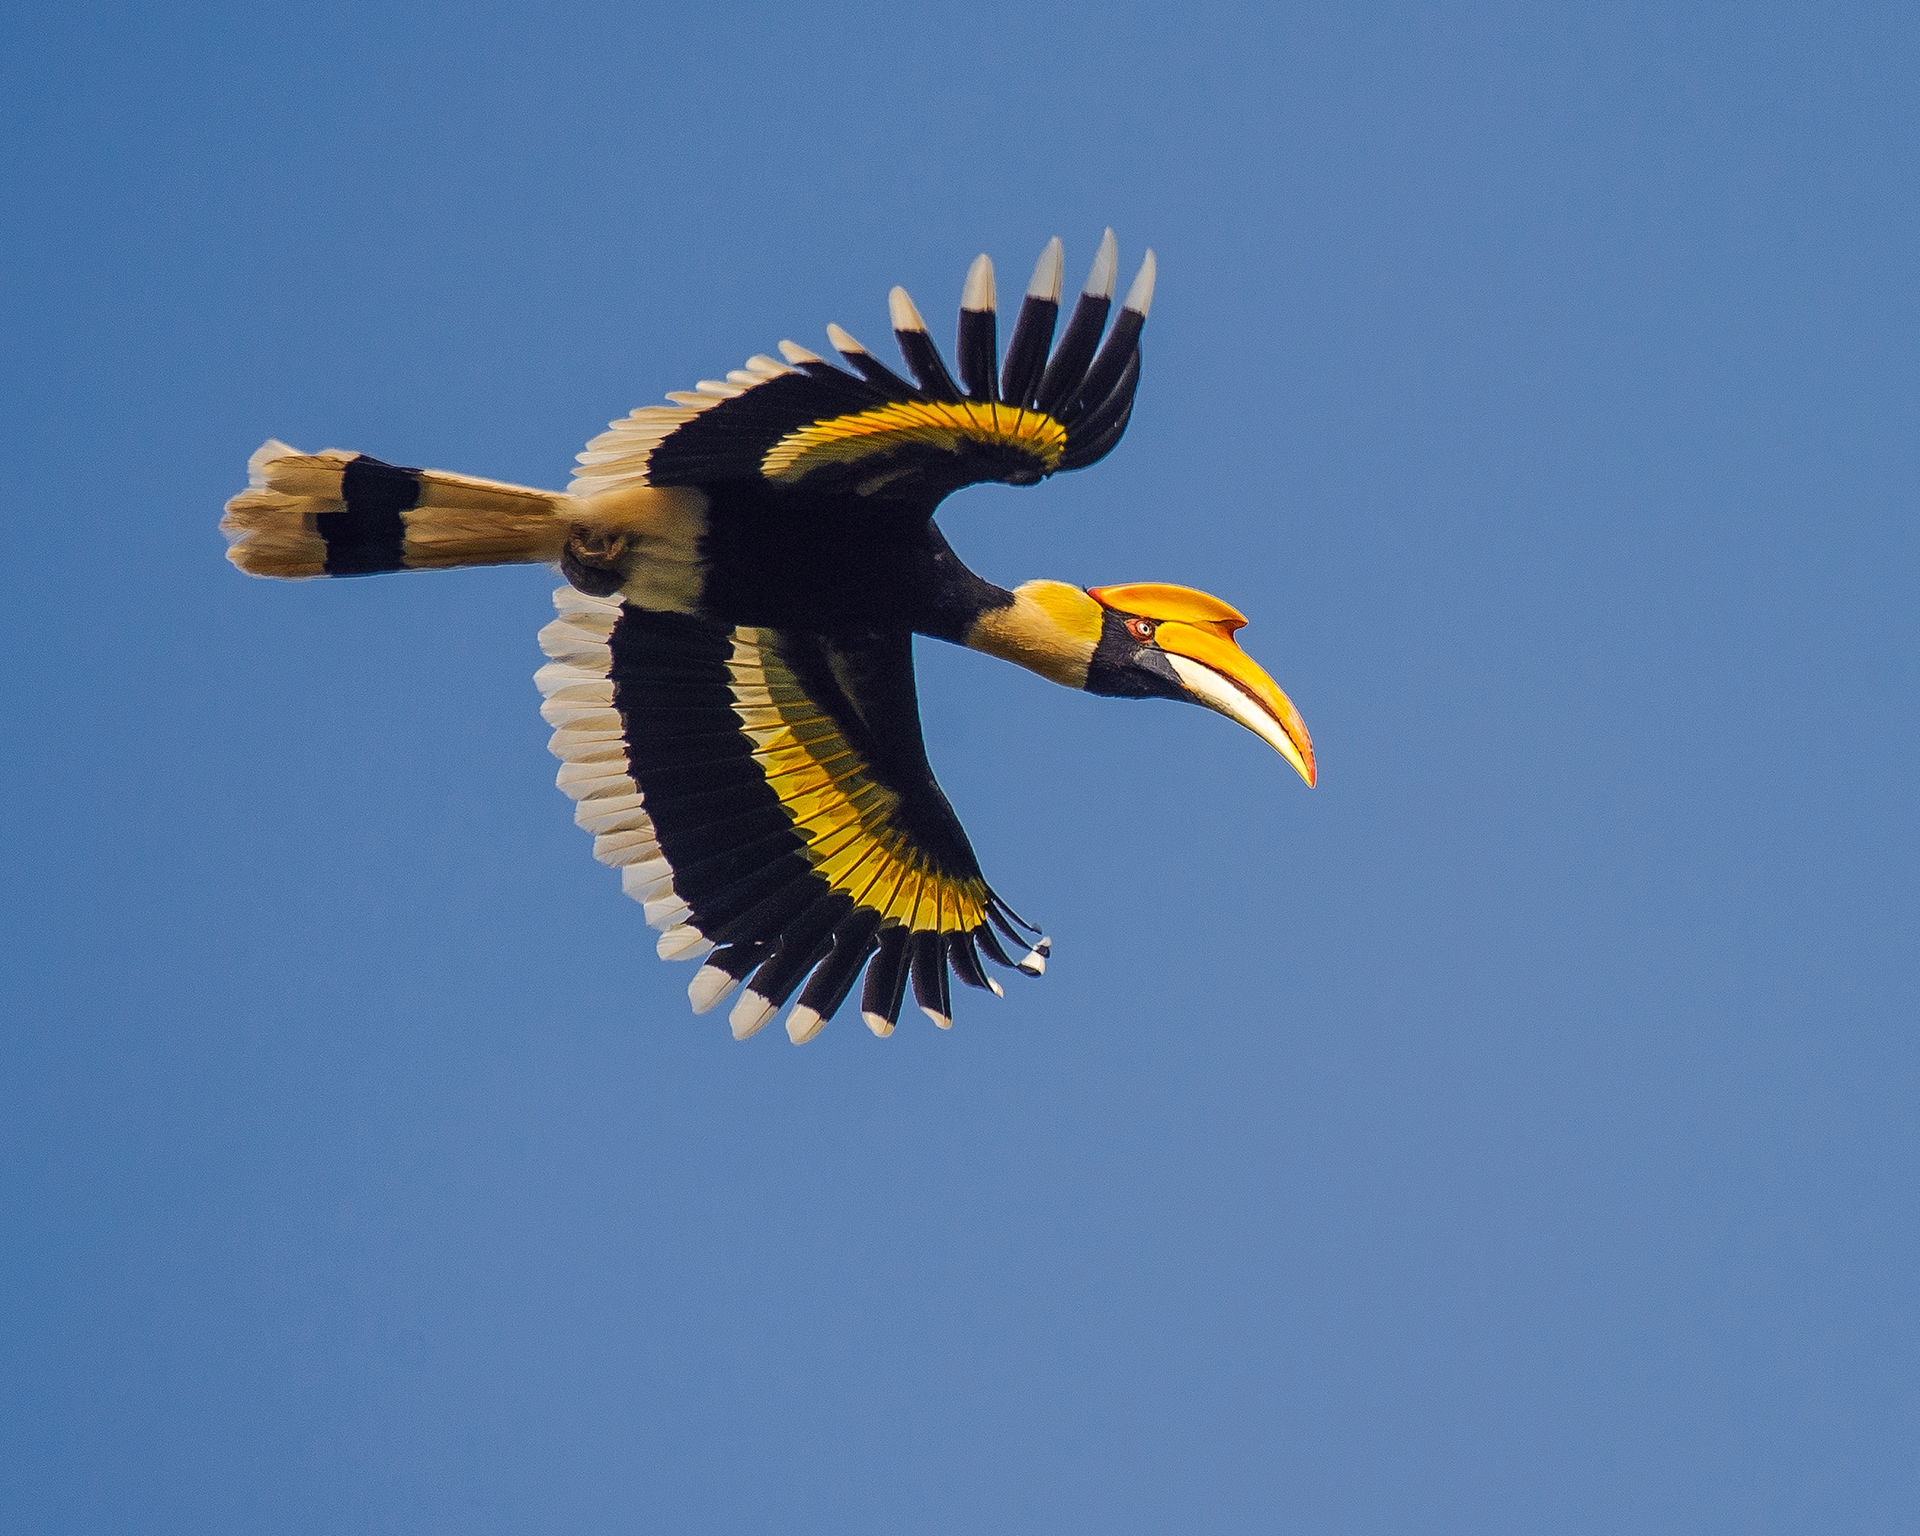 The great hornbill has a spectacular 5-foot wingspan, and often lands with a heavy 'whoosh' on tree branches, earning it its local name Malamuzhakki Vezhambal in Kerala, meaning mountain echo. Photo: Udayan Borthakur